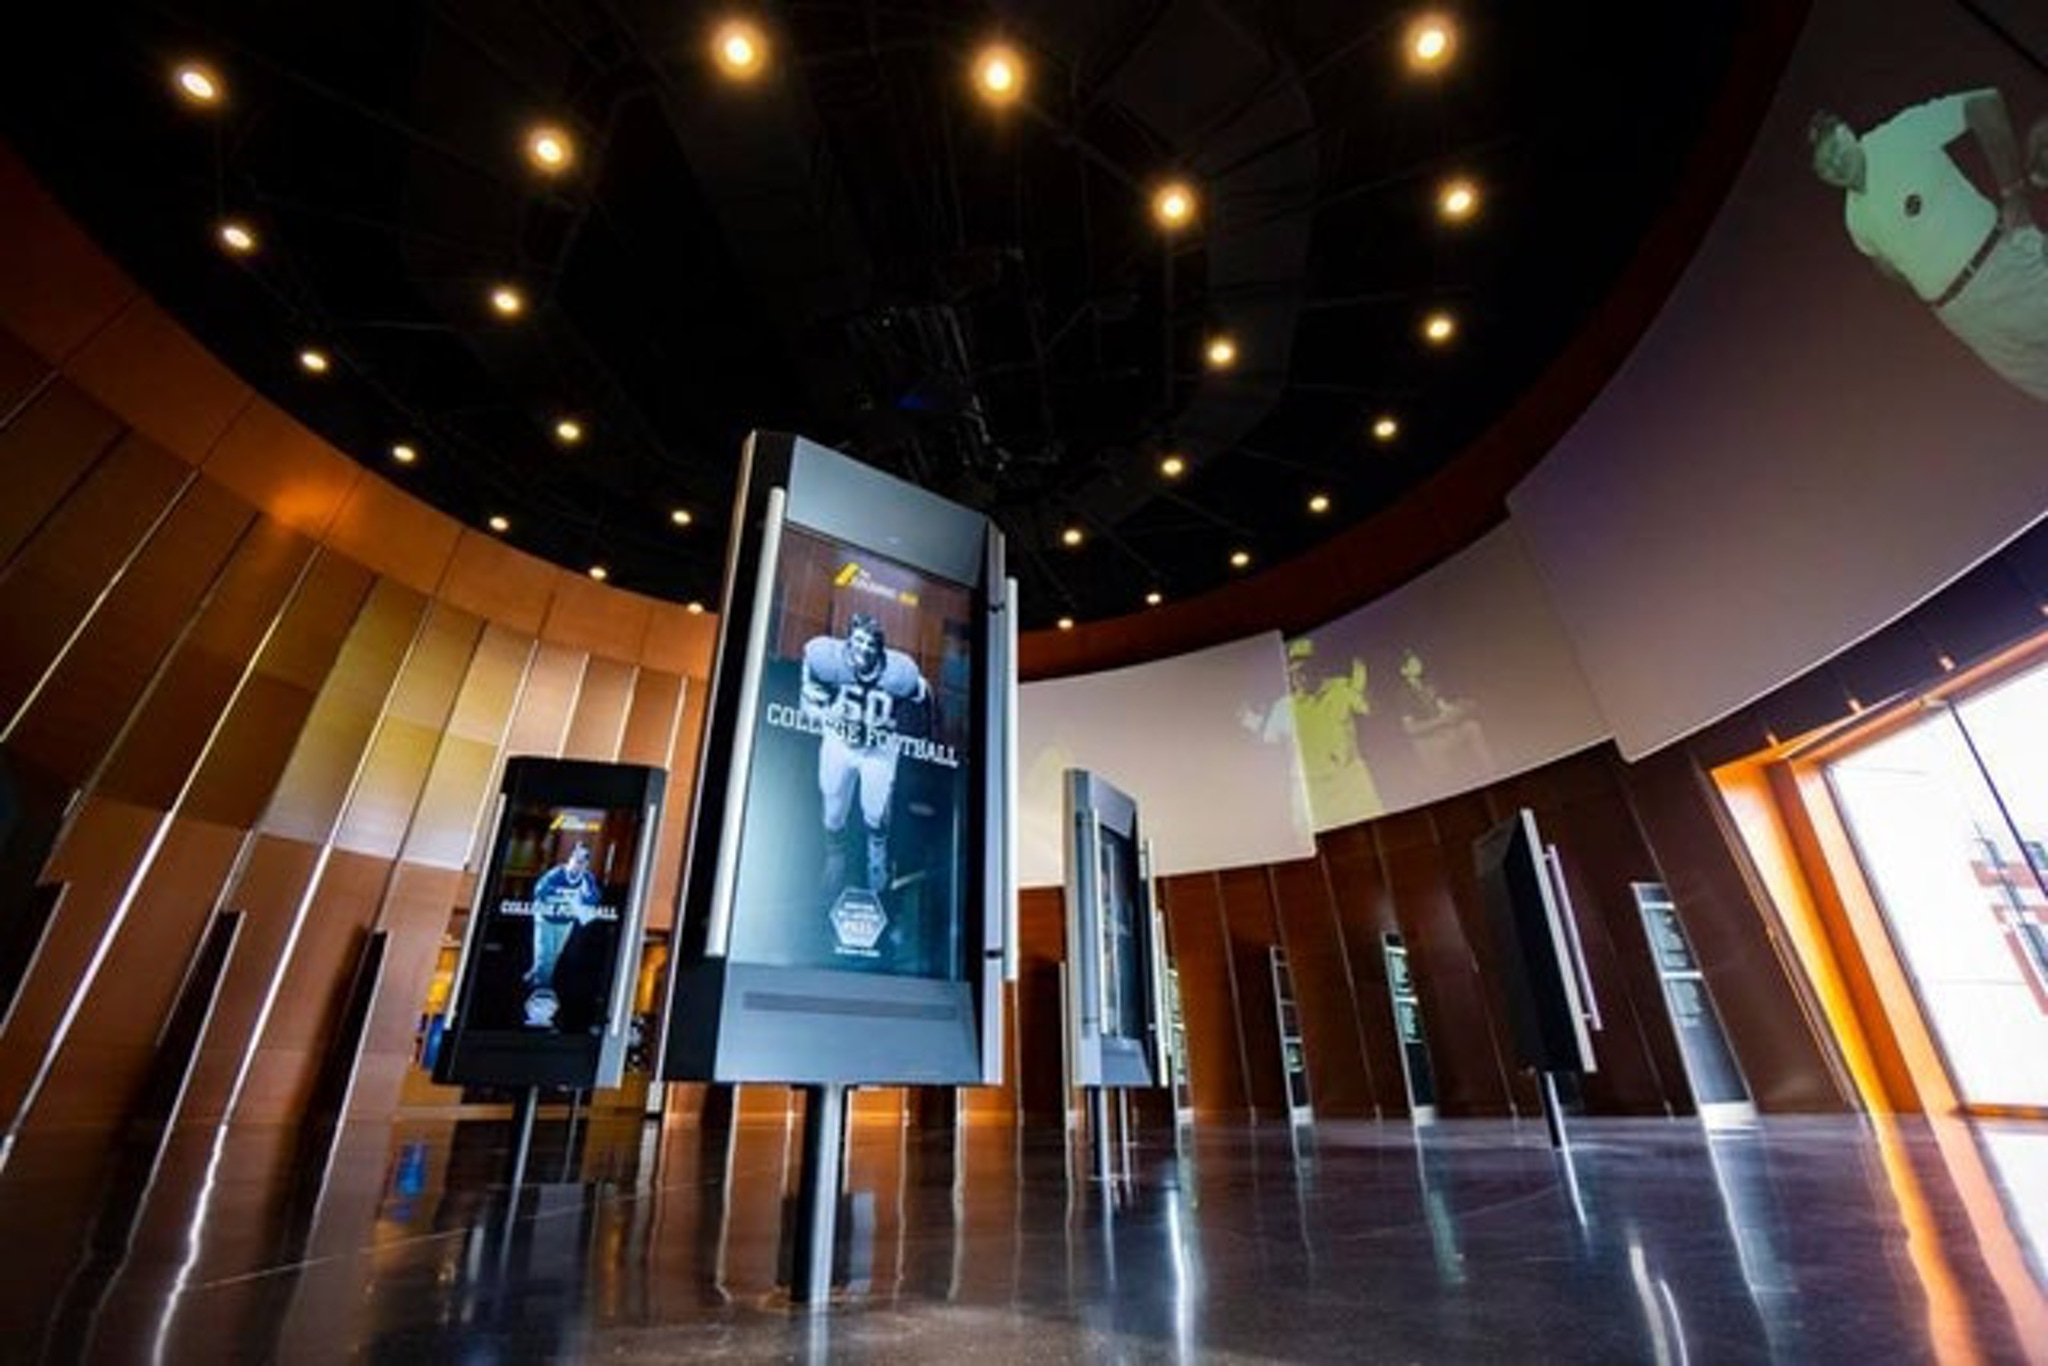 College Football Hall of Fame Atlanta